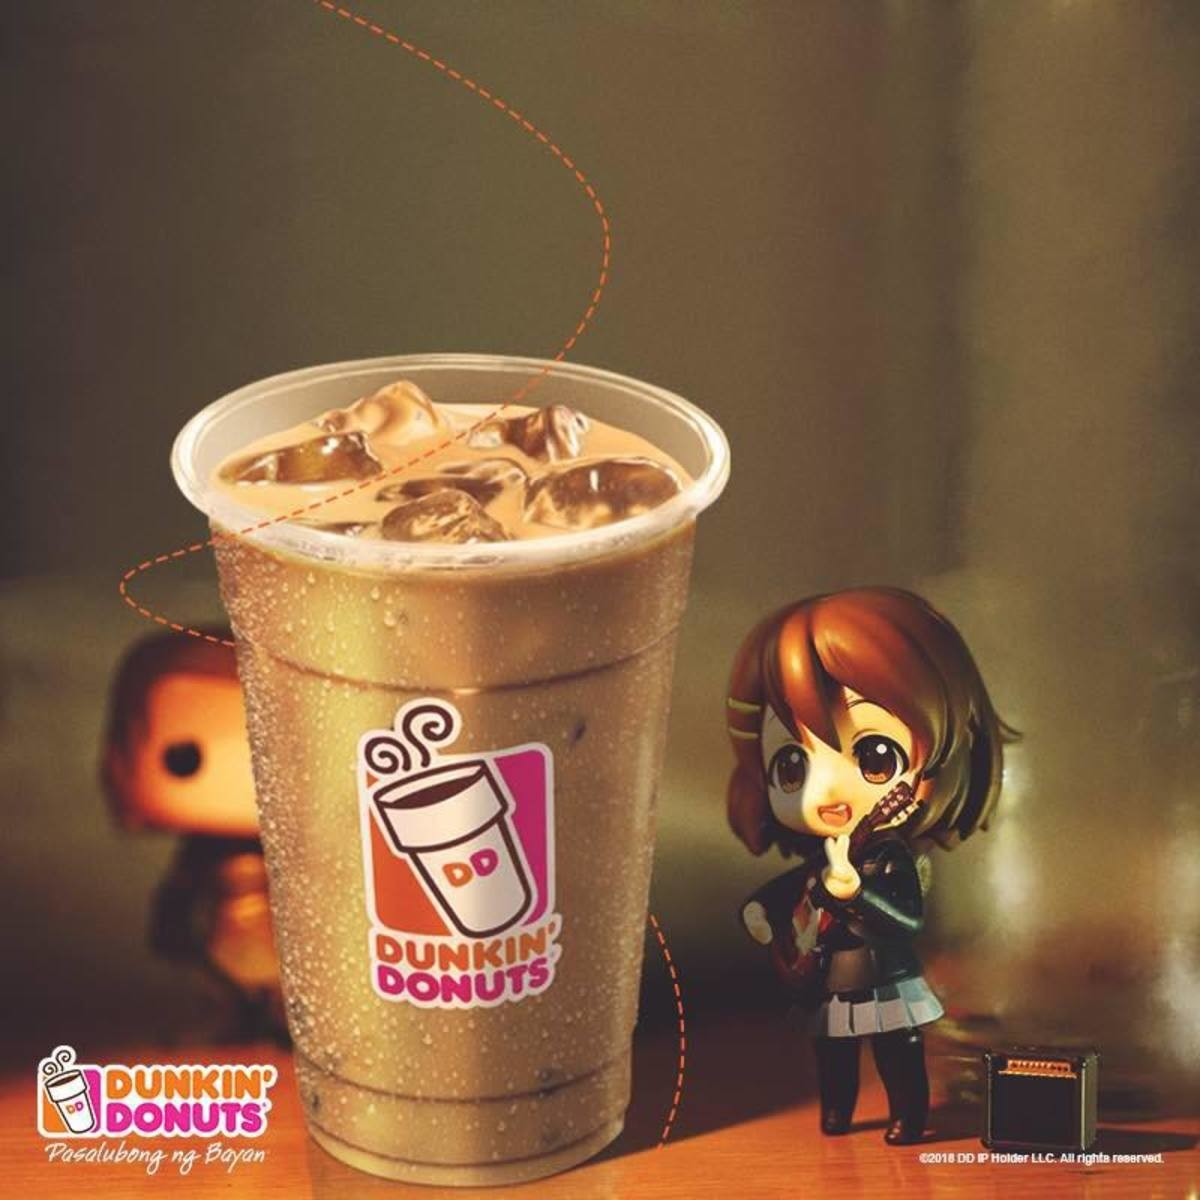 America Runs on Dunkin?. https://www.facebook.com/DunkinDonutsPH/photos/a.169454206537544/1132421150240840/?type=3&theater Real ad join list: SmolHol (1445